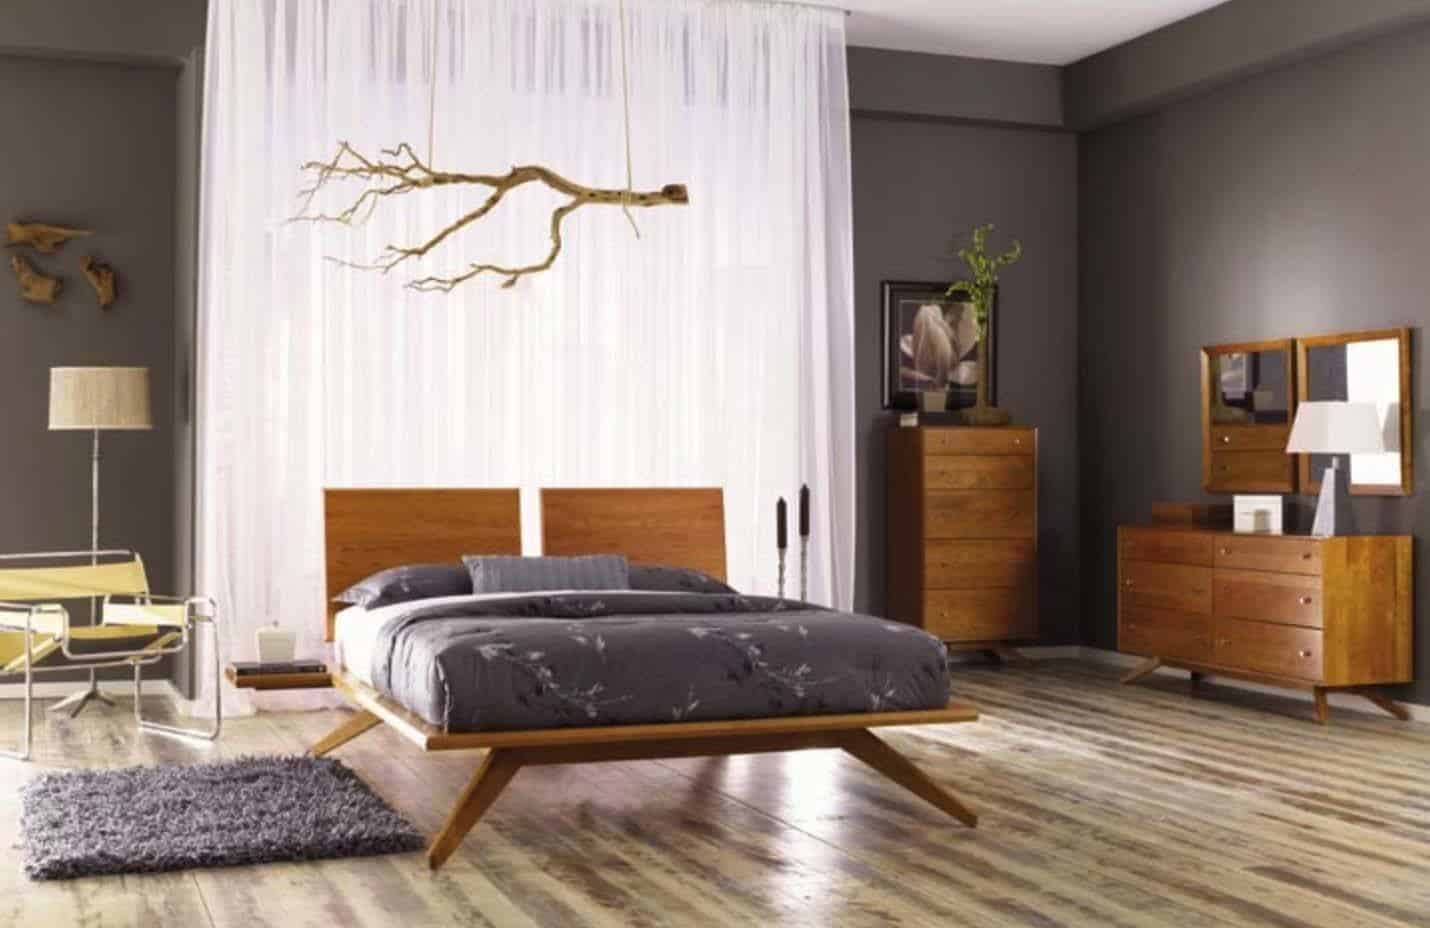 35 wonderfully stylish mid century modern bedrooms. Black Bedroom Furniture Sets. Home Design Ideas